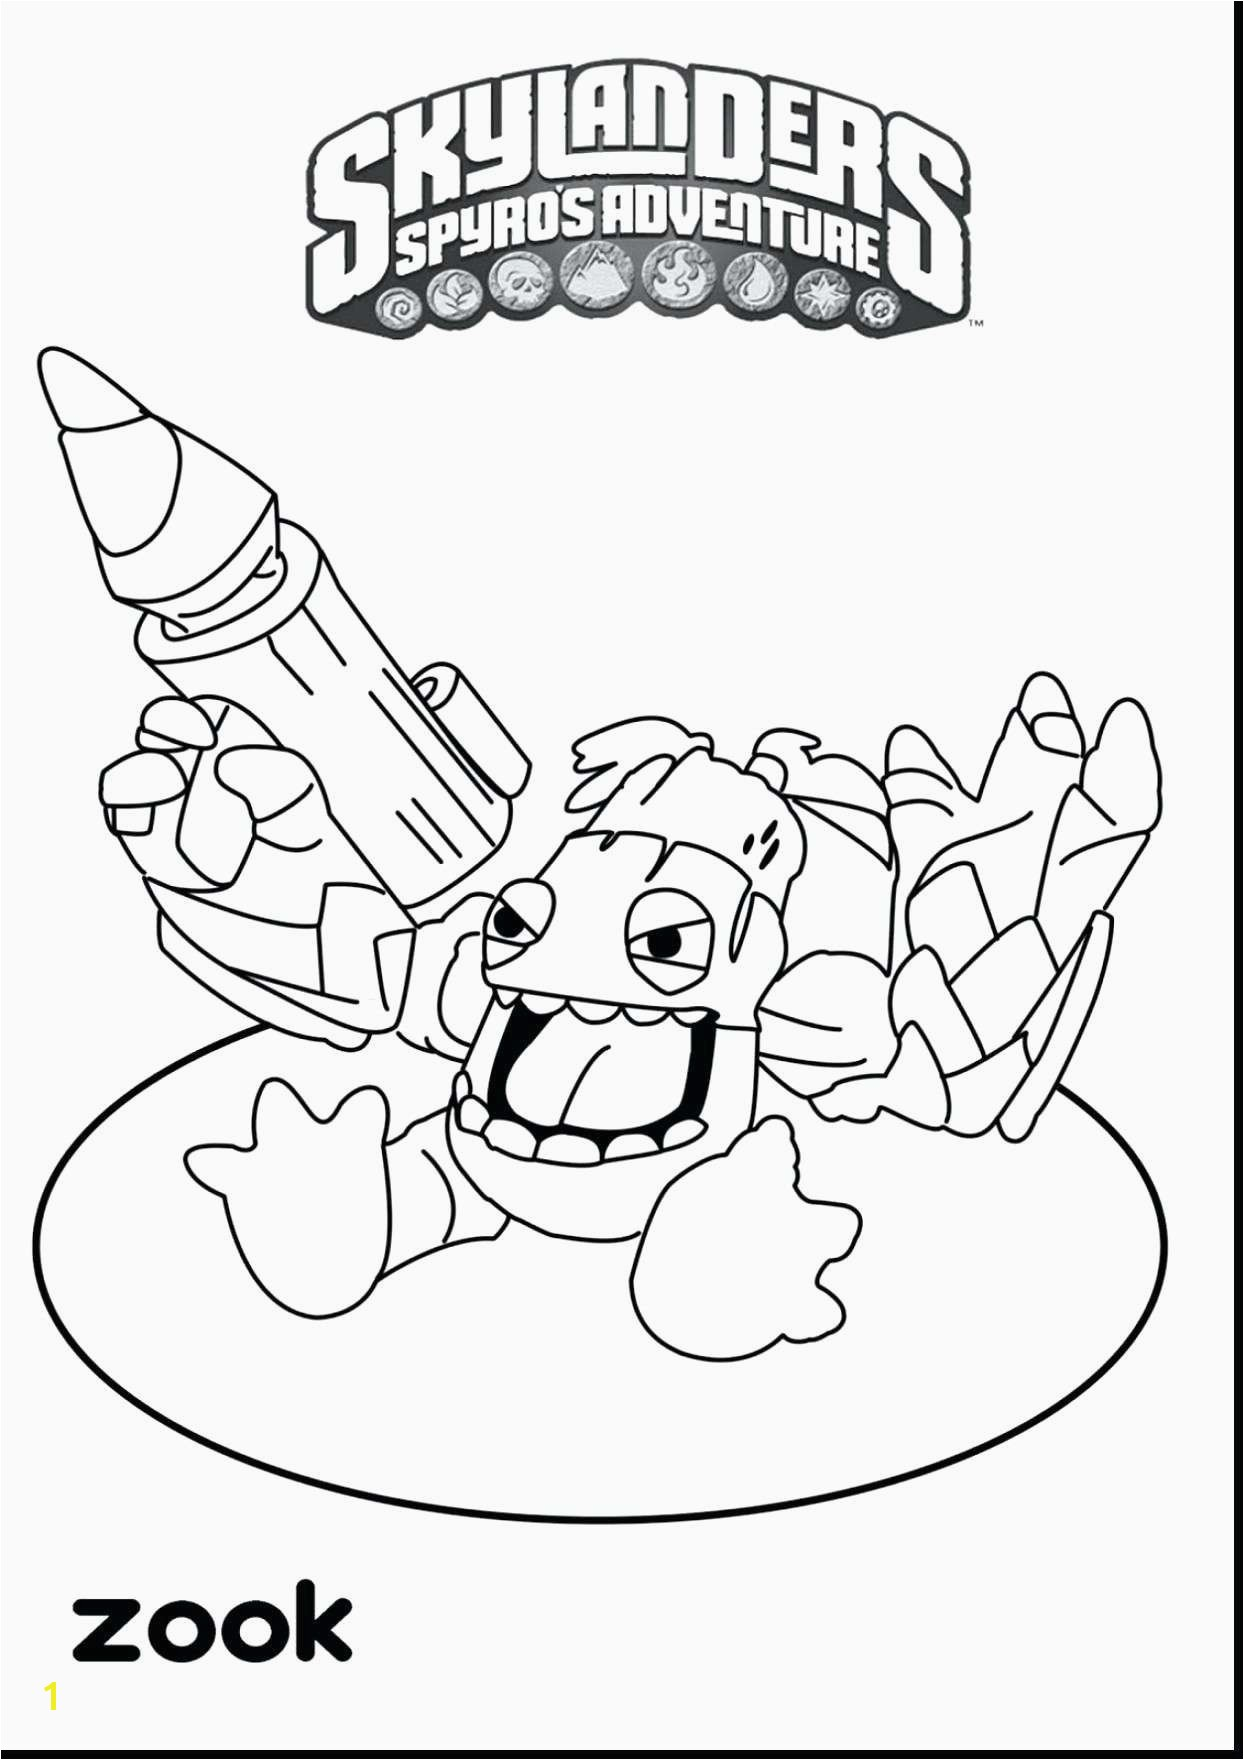 Kids Coloring Pages Beautiful Coloring Page Websites New Witch Coloring Pages New Crayola Pages 0d Christmas Tree ornaments